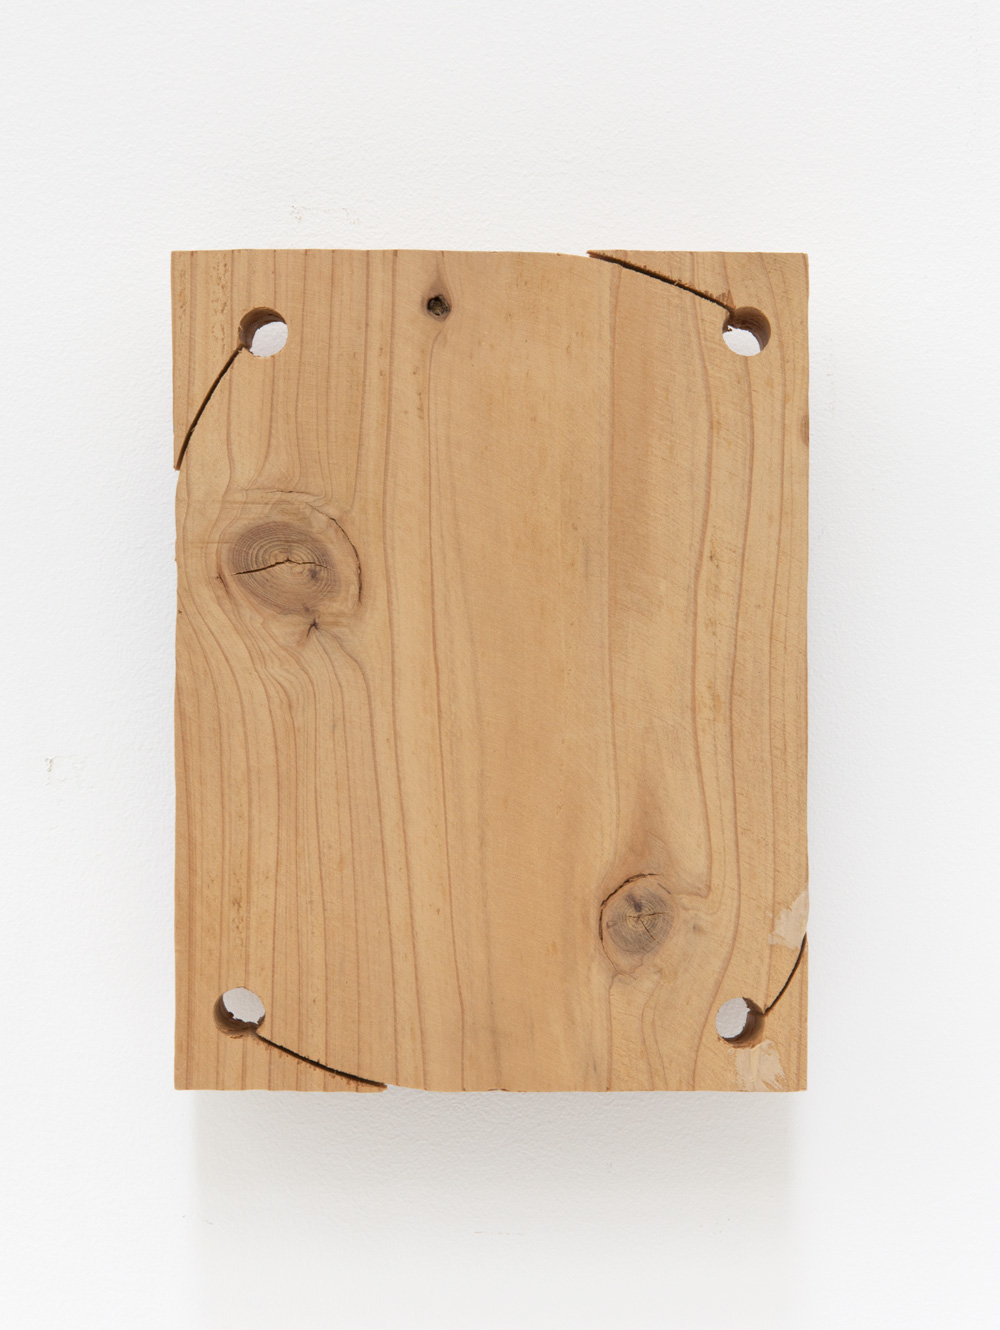 Components in Between , 2004 間素 ( Kanso ) Wood 9 1/4 x 7 x 2 1/8 inches 23.5 x 18 x 5.5 cm